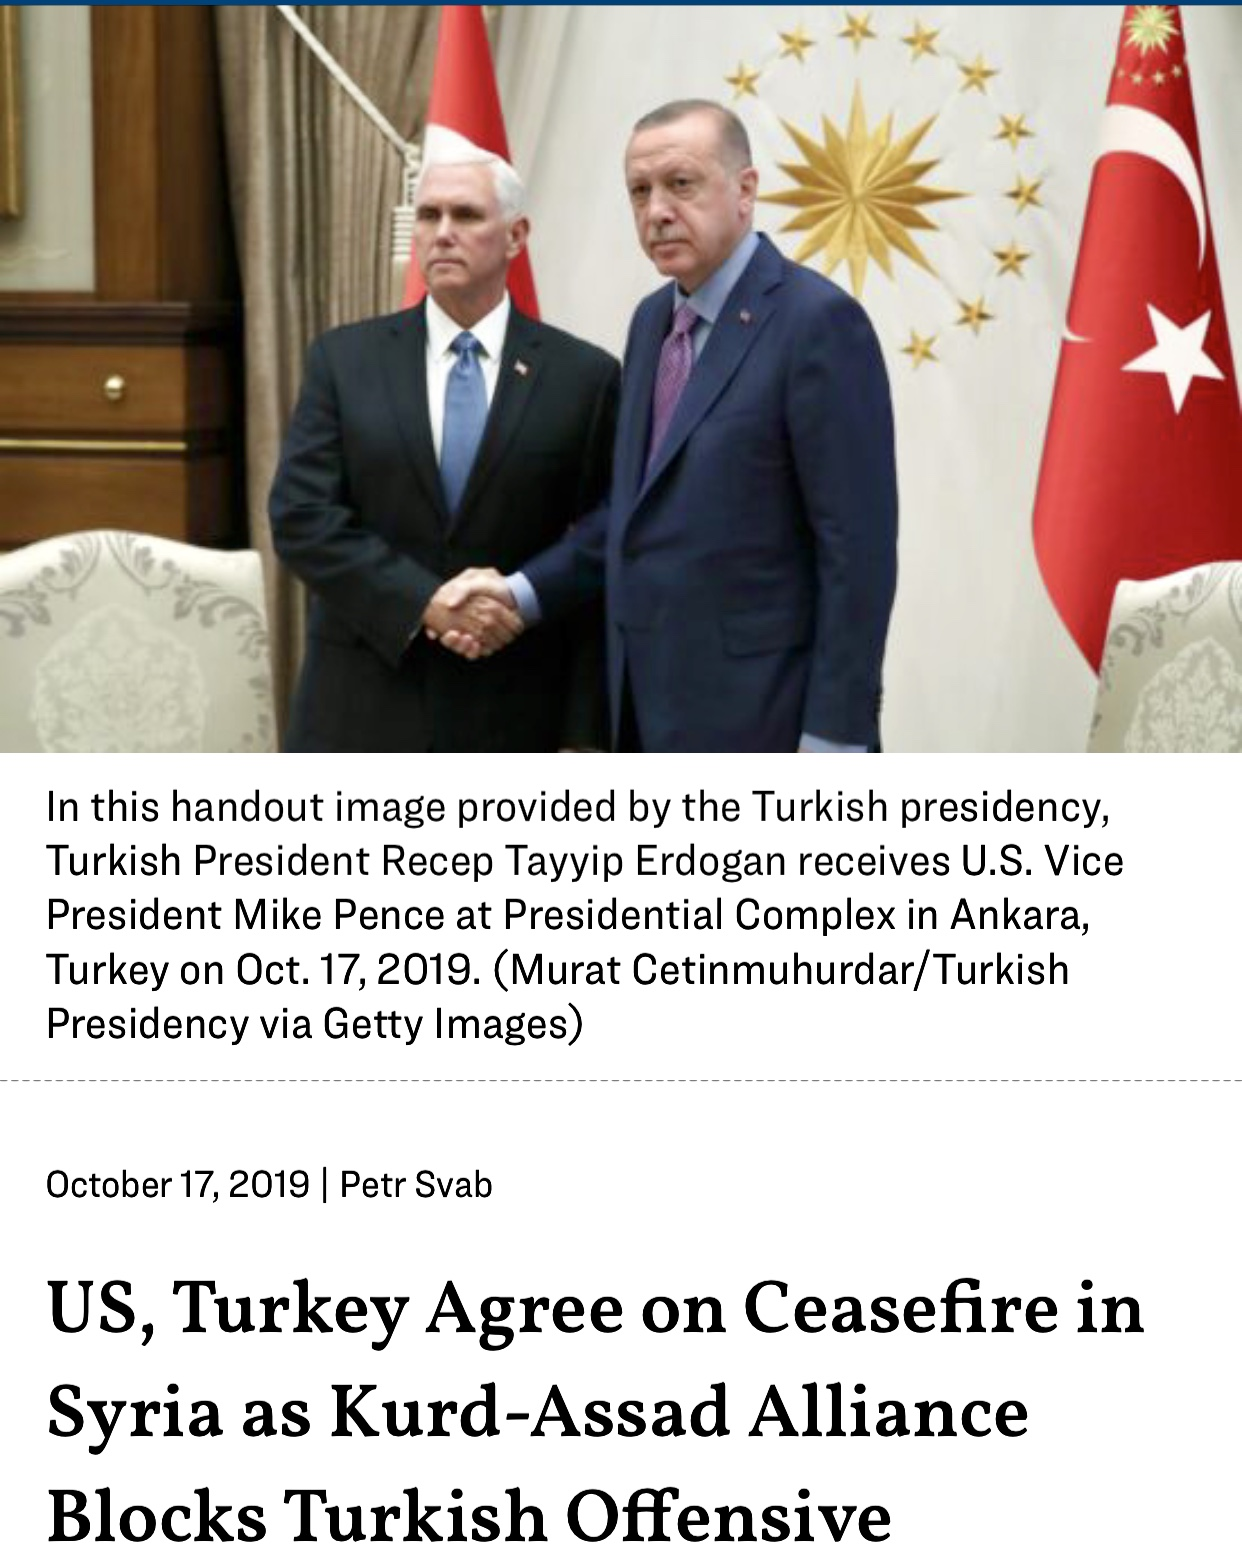 US and Turkey Agree on Ceasefire in Syria